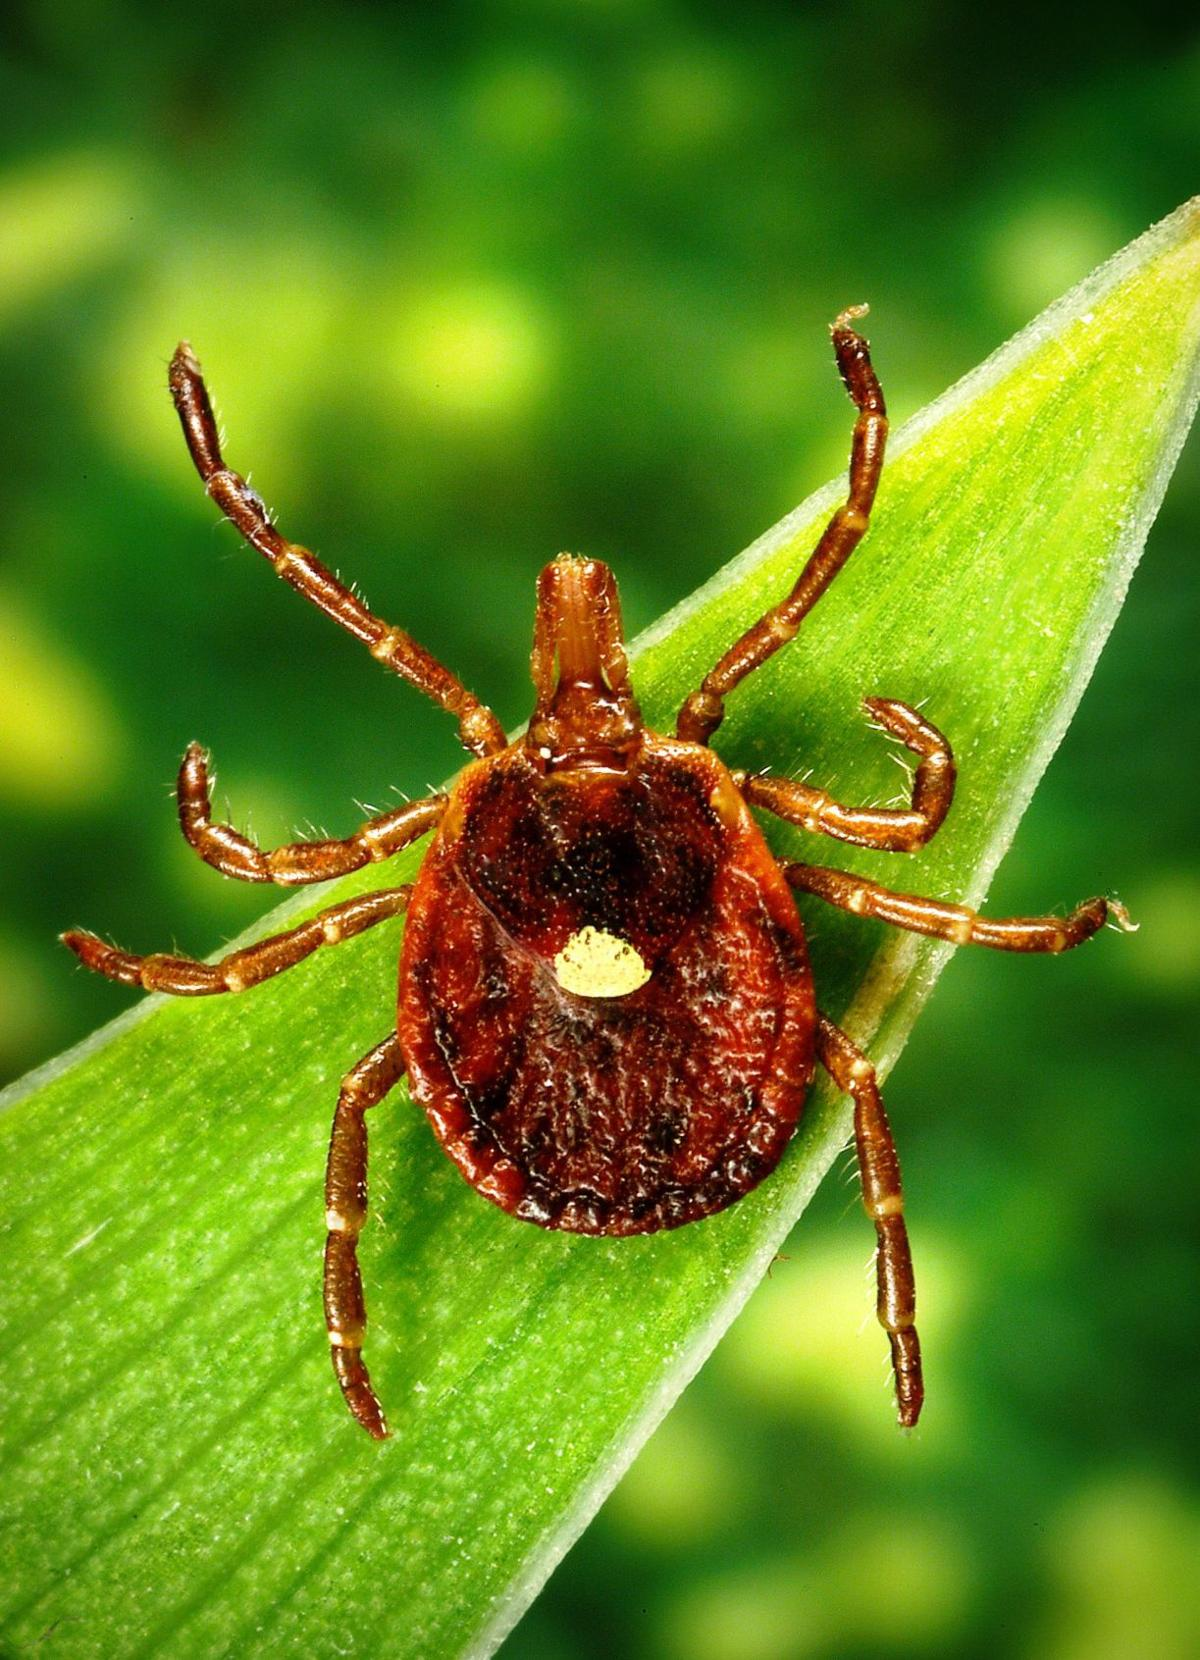 Meat allergy triggered by a tick bite